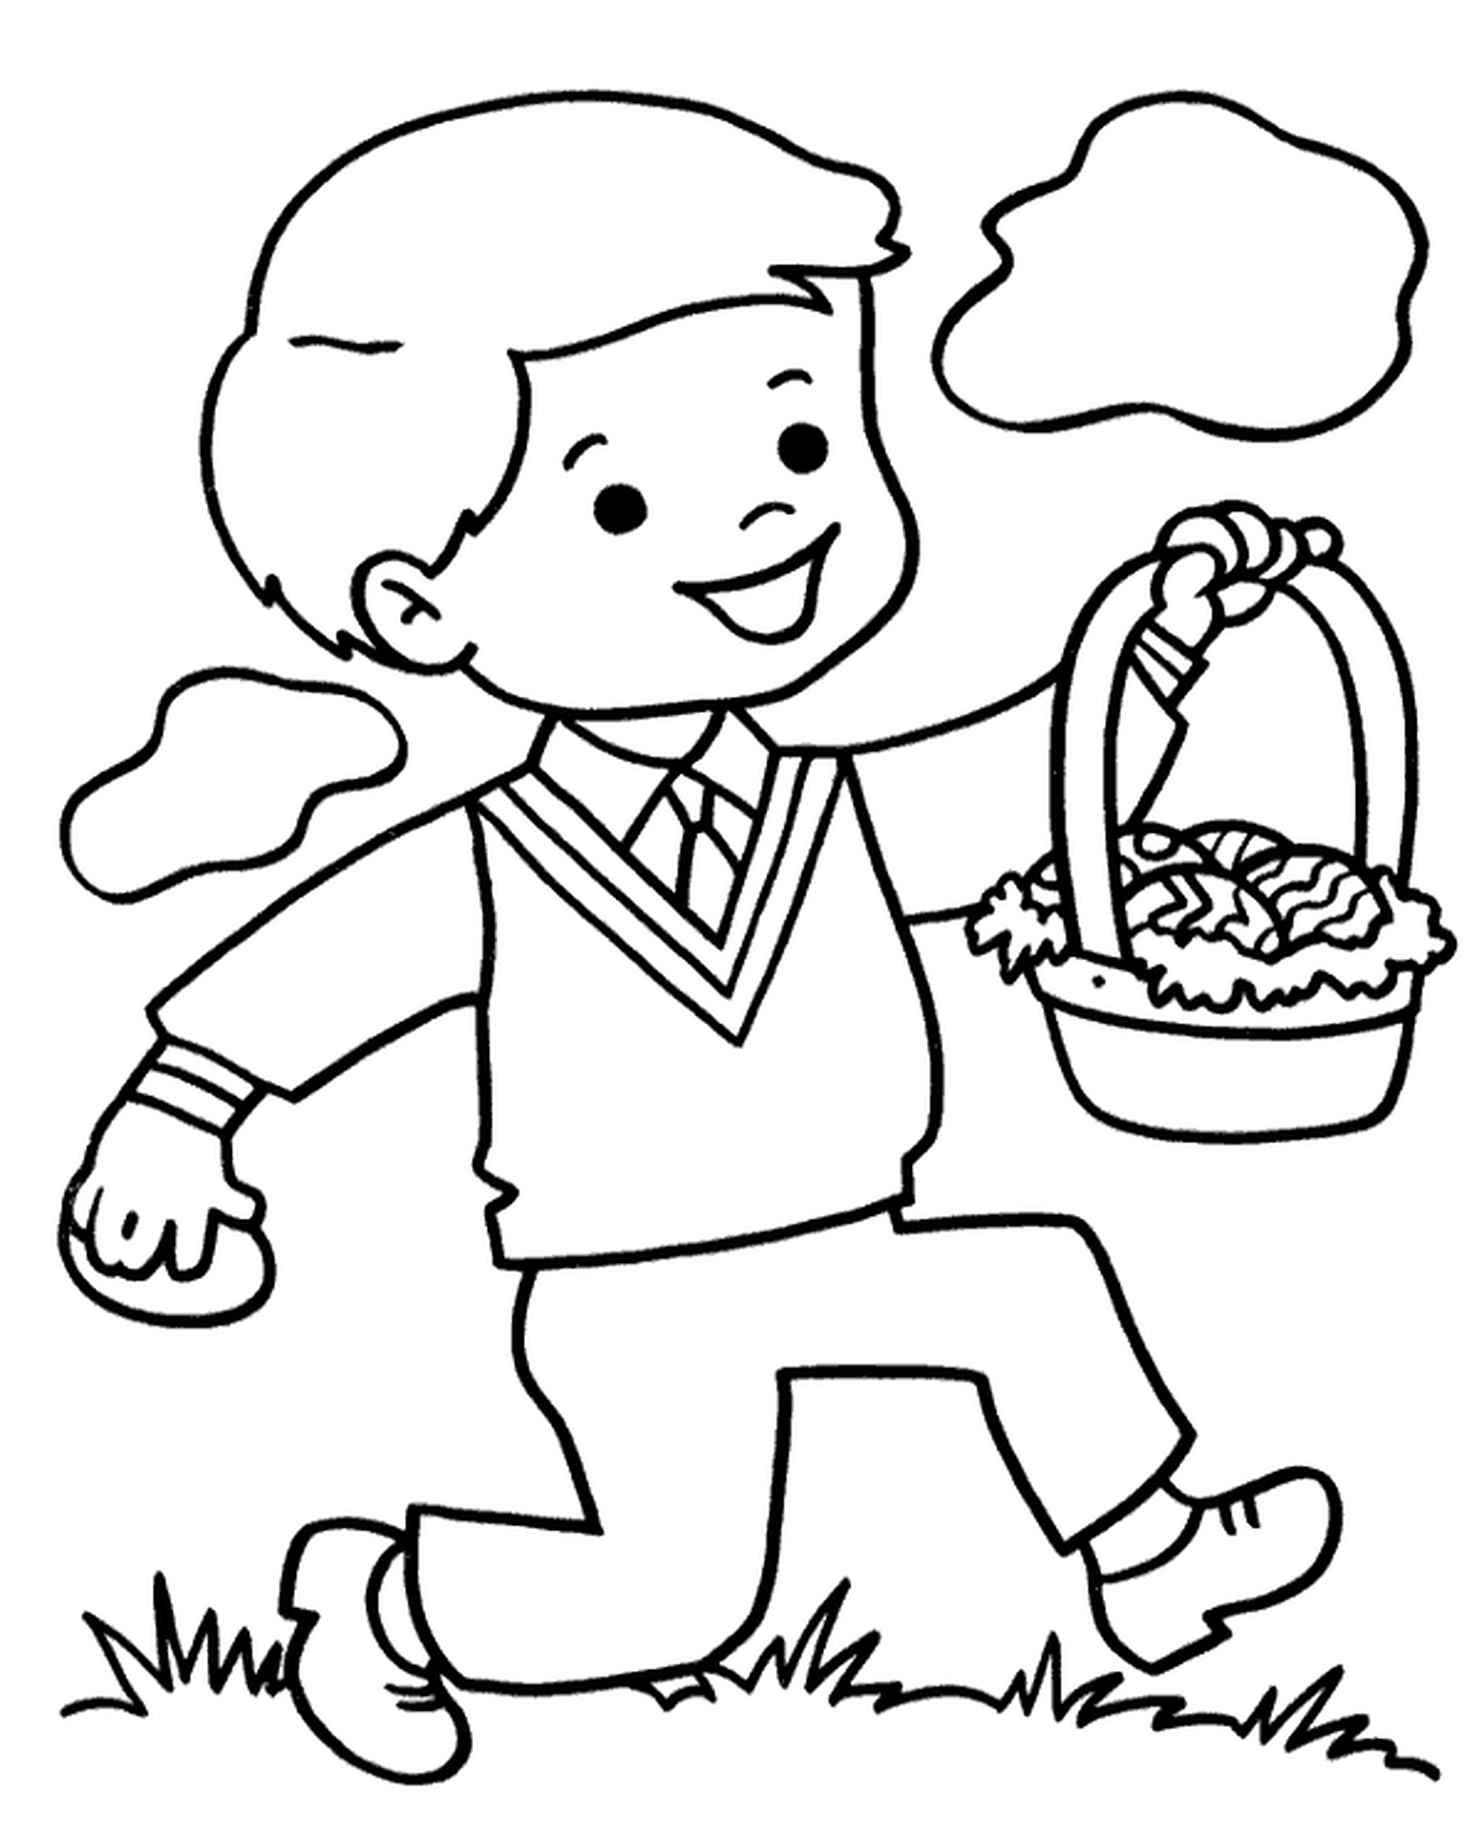 A Boy Carrying Easter Basket Full Of Easter Eggs